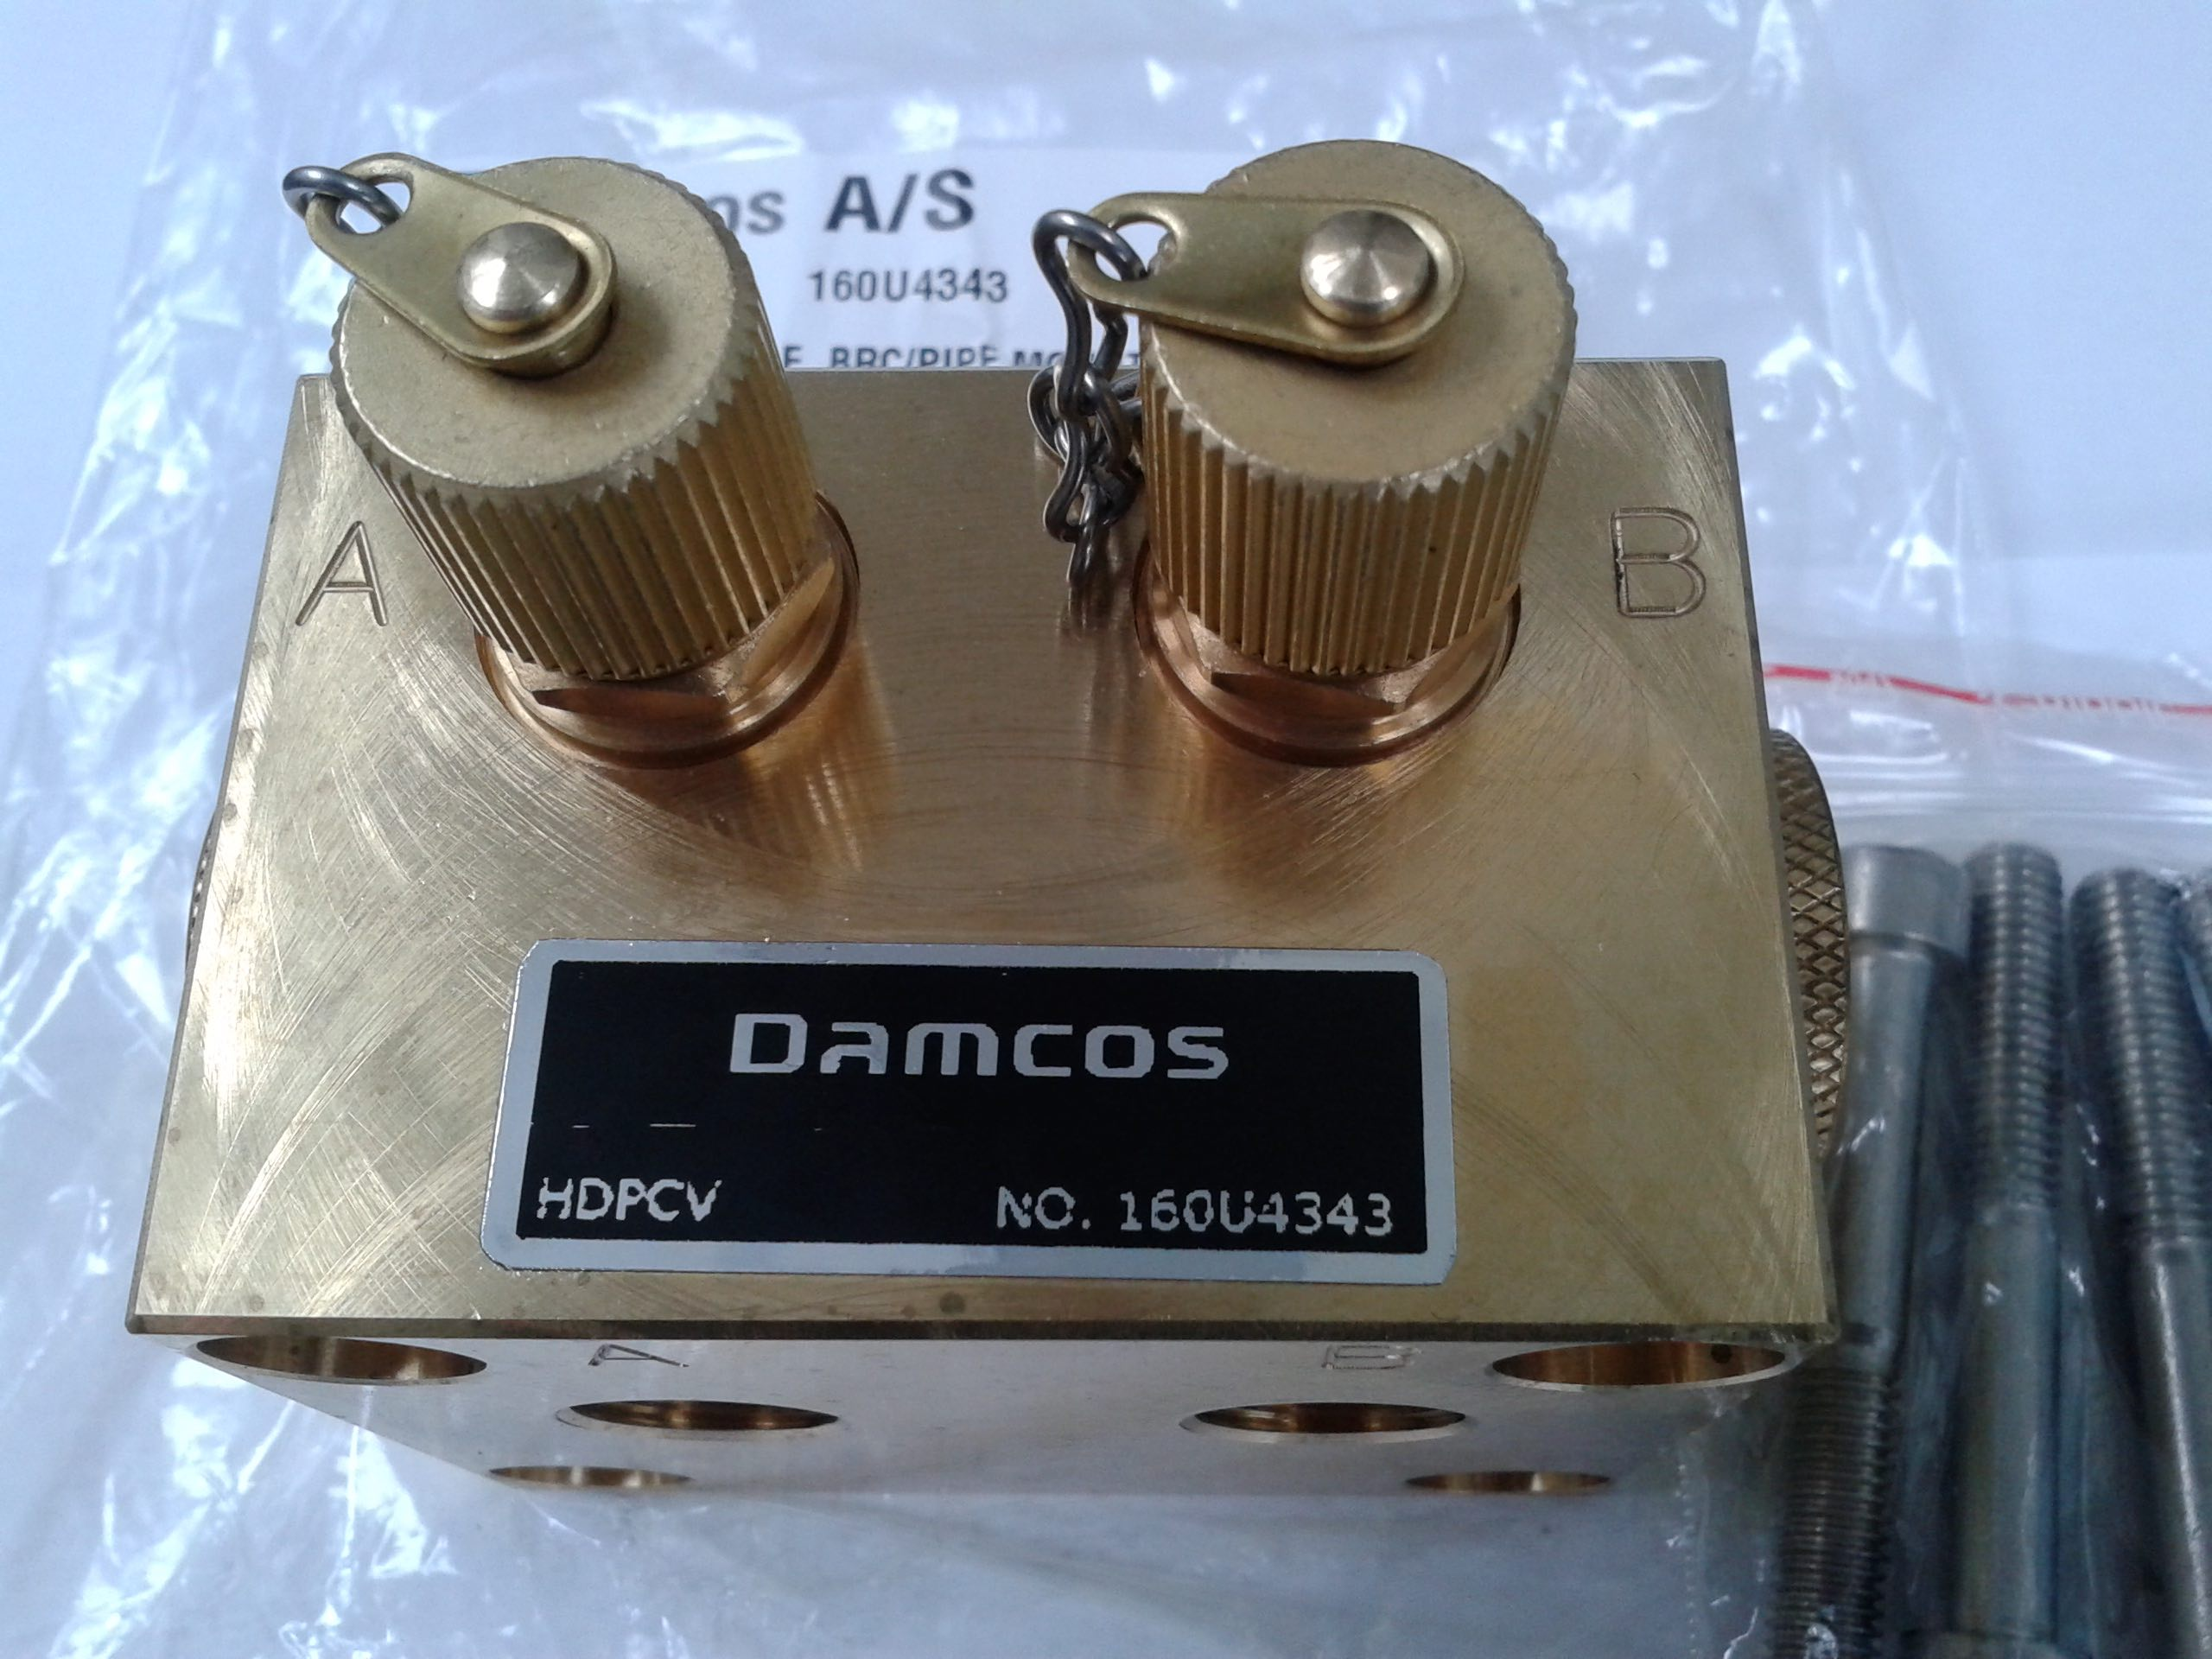 Damcos DanfoSS hdpcv Connection Block for BRC:F 160U4343